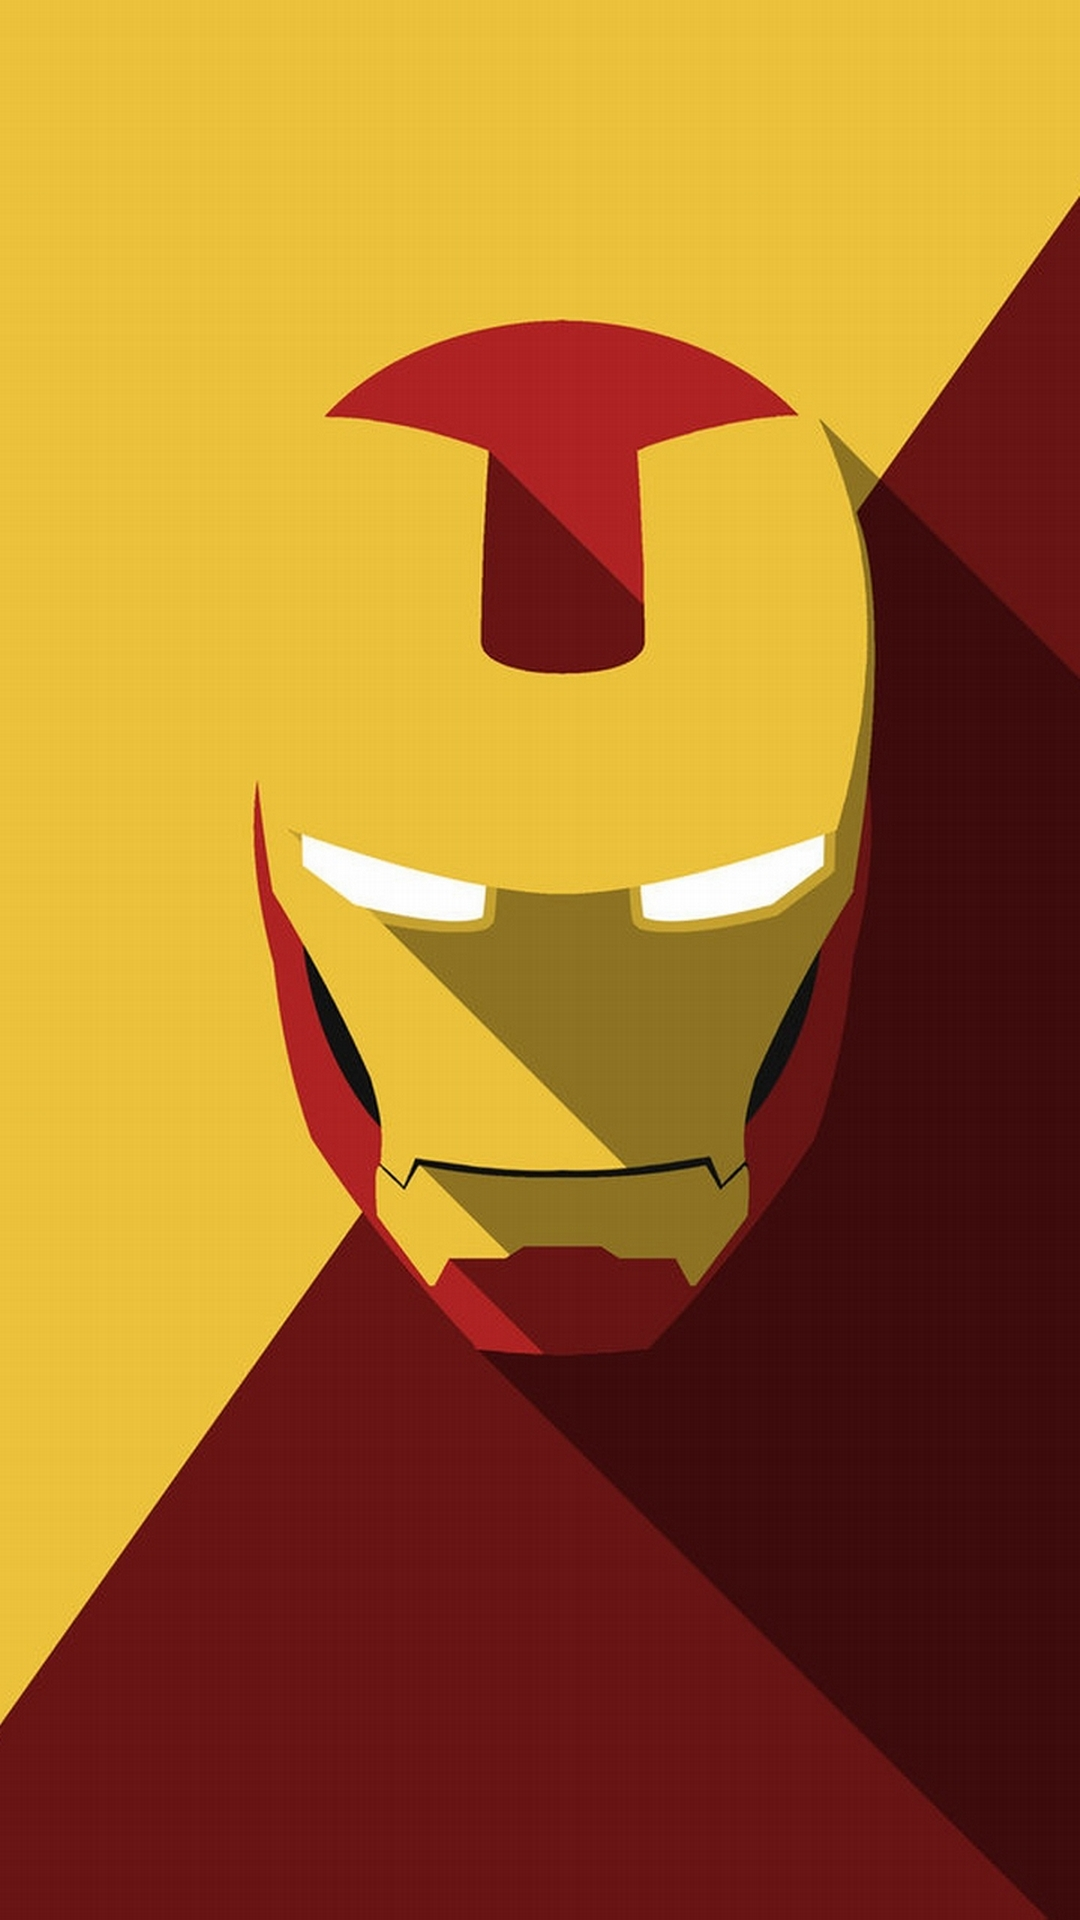 Iron Man Mask HD Mobile Wallpaper   Vactual Papers 1080x1920